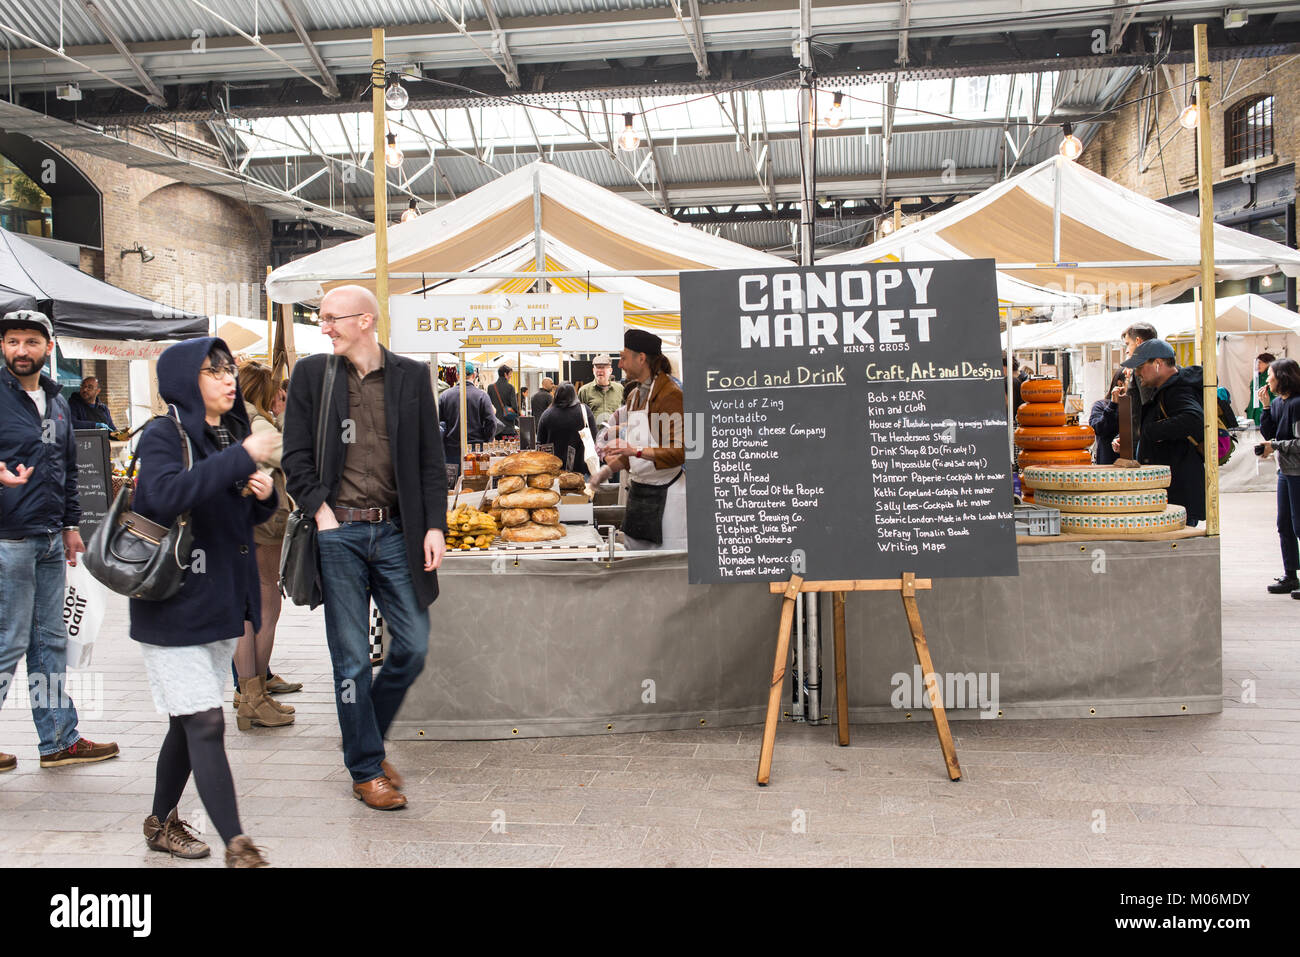 People visiting the the Canopy Market, King's Cross, London. Canopy market is a pop-up market near Granary Square - Stock Image